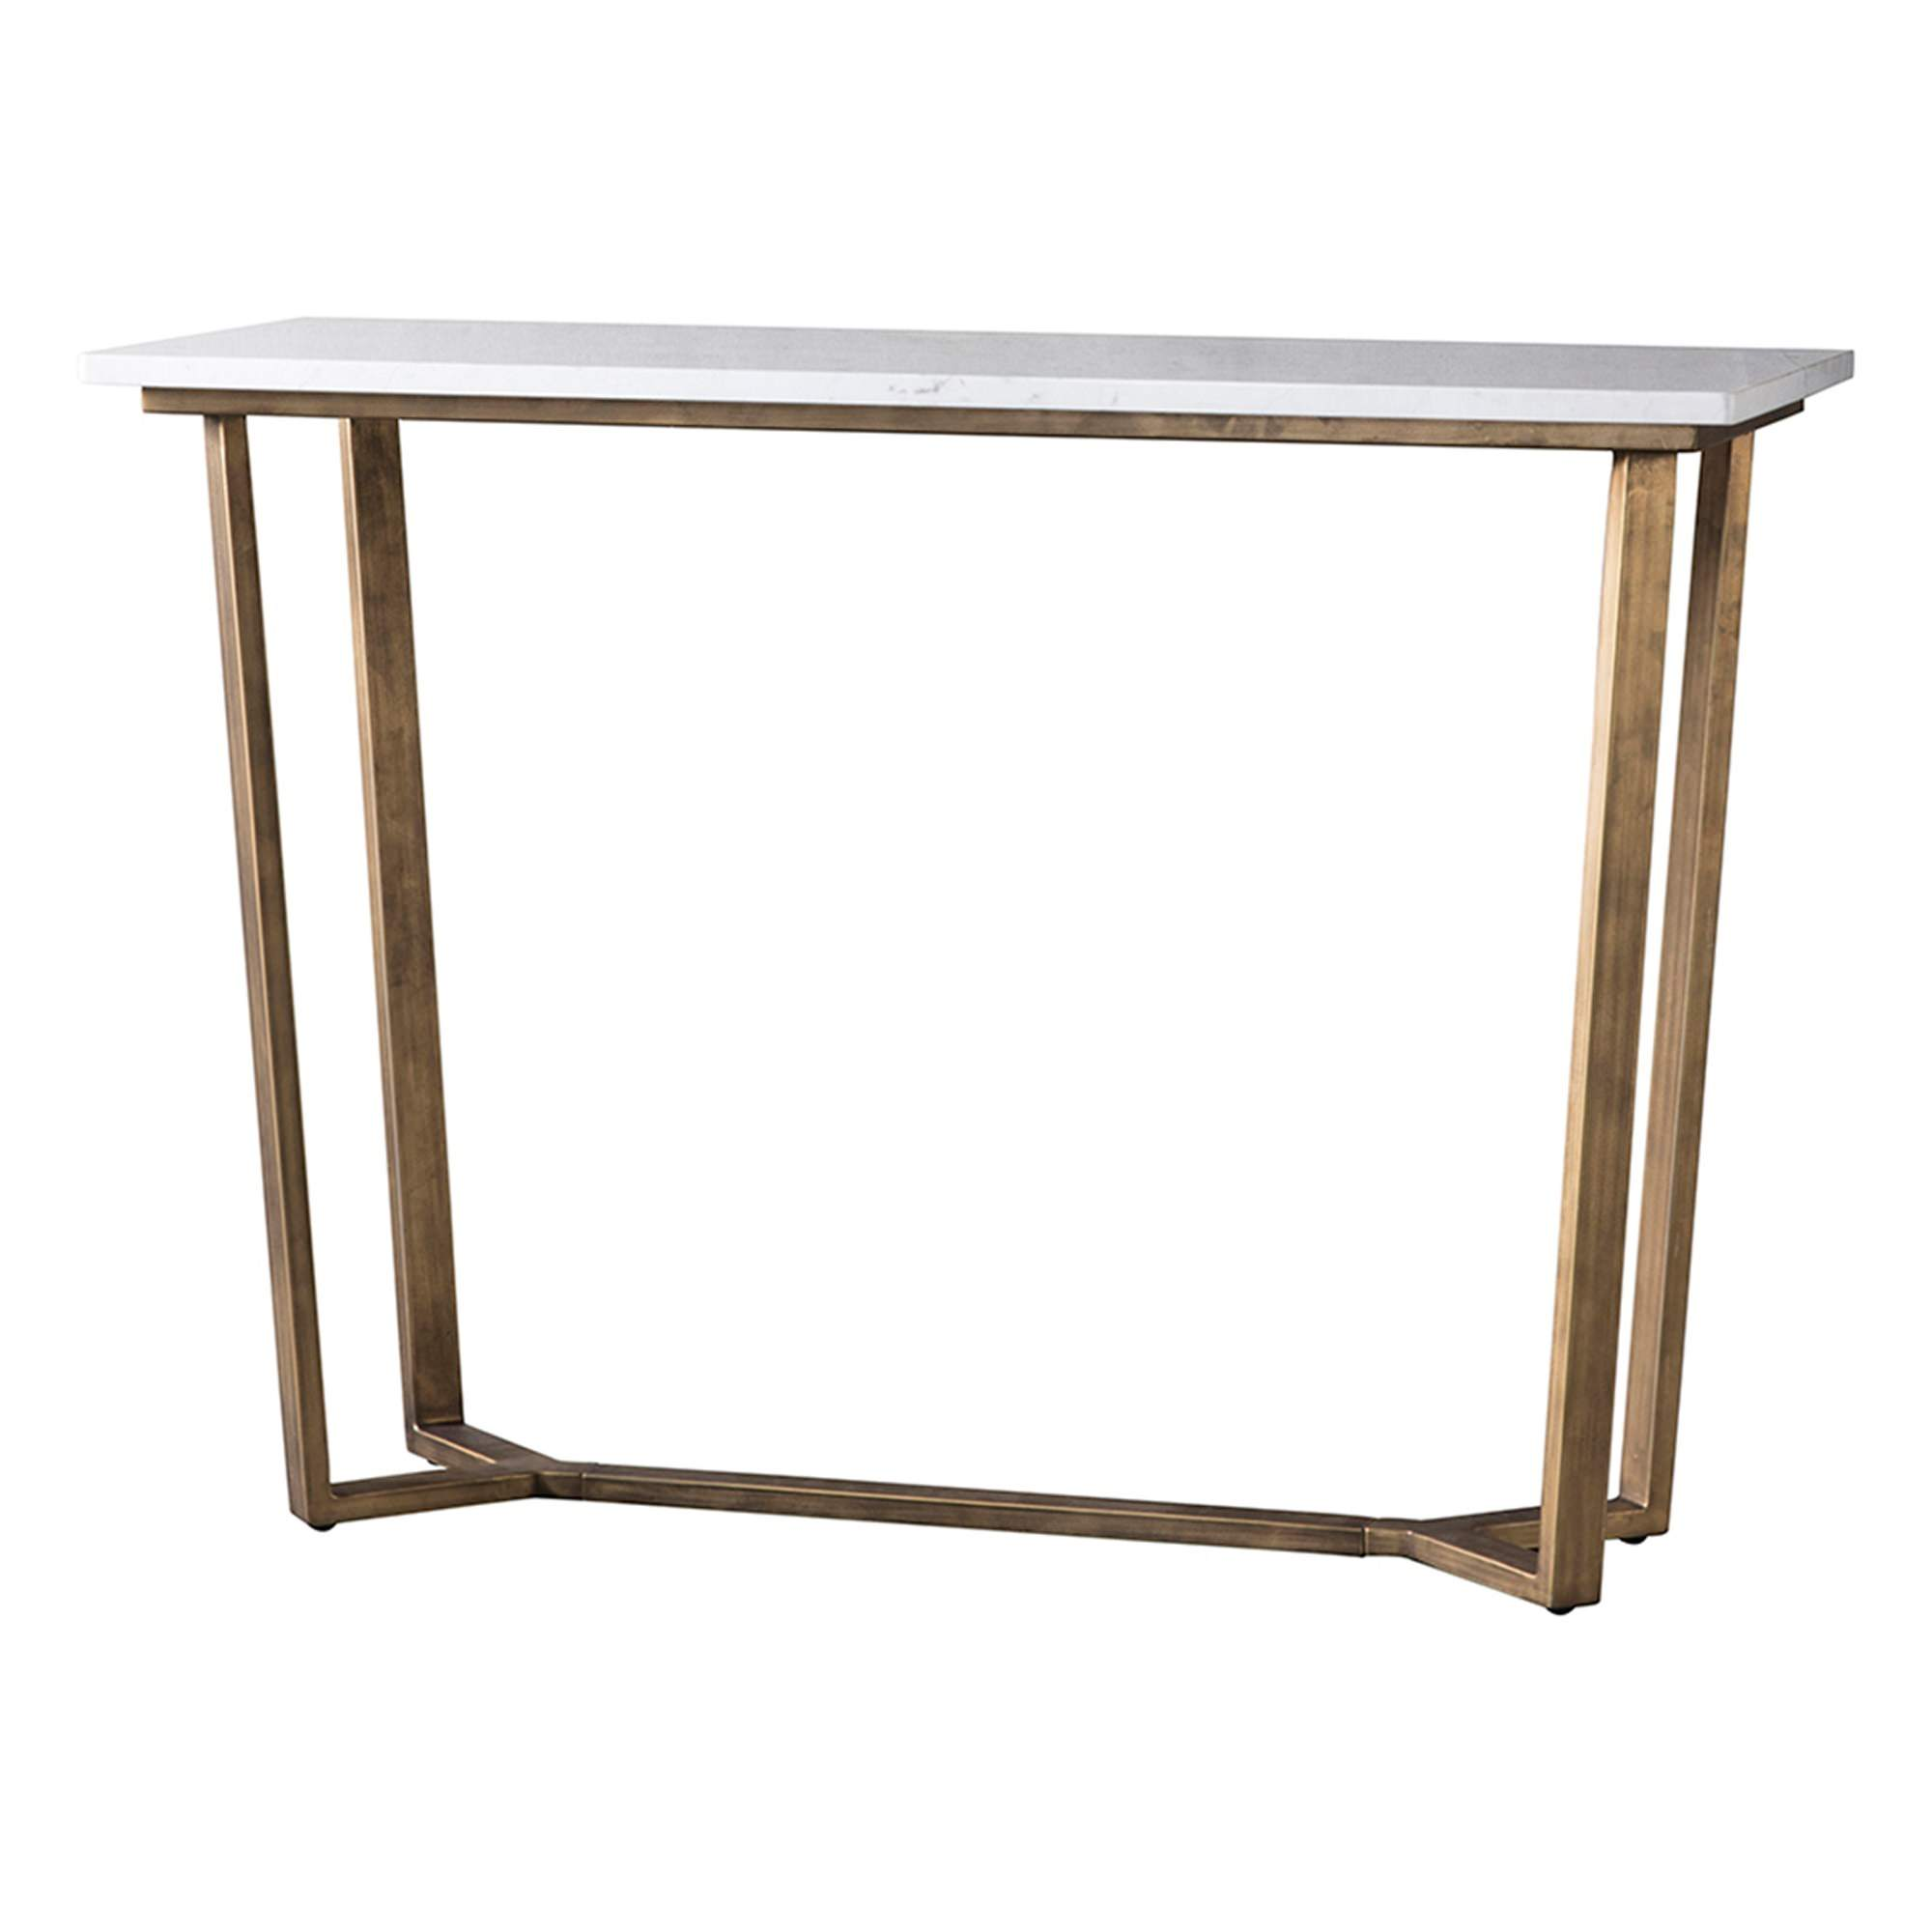 Earl Marble Top Console Table, 110cm, White / Brass